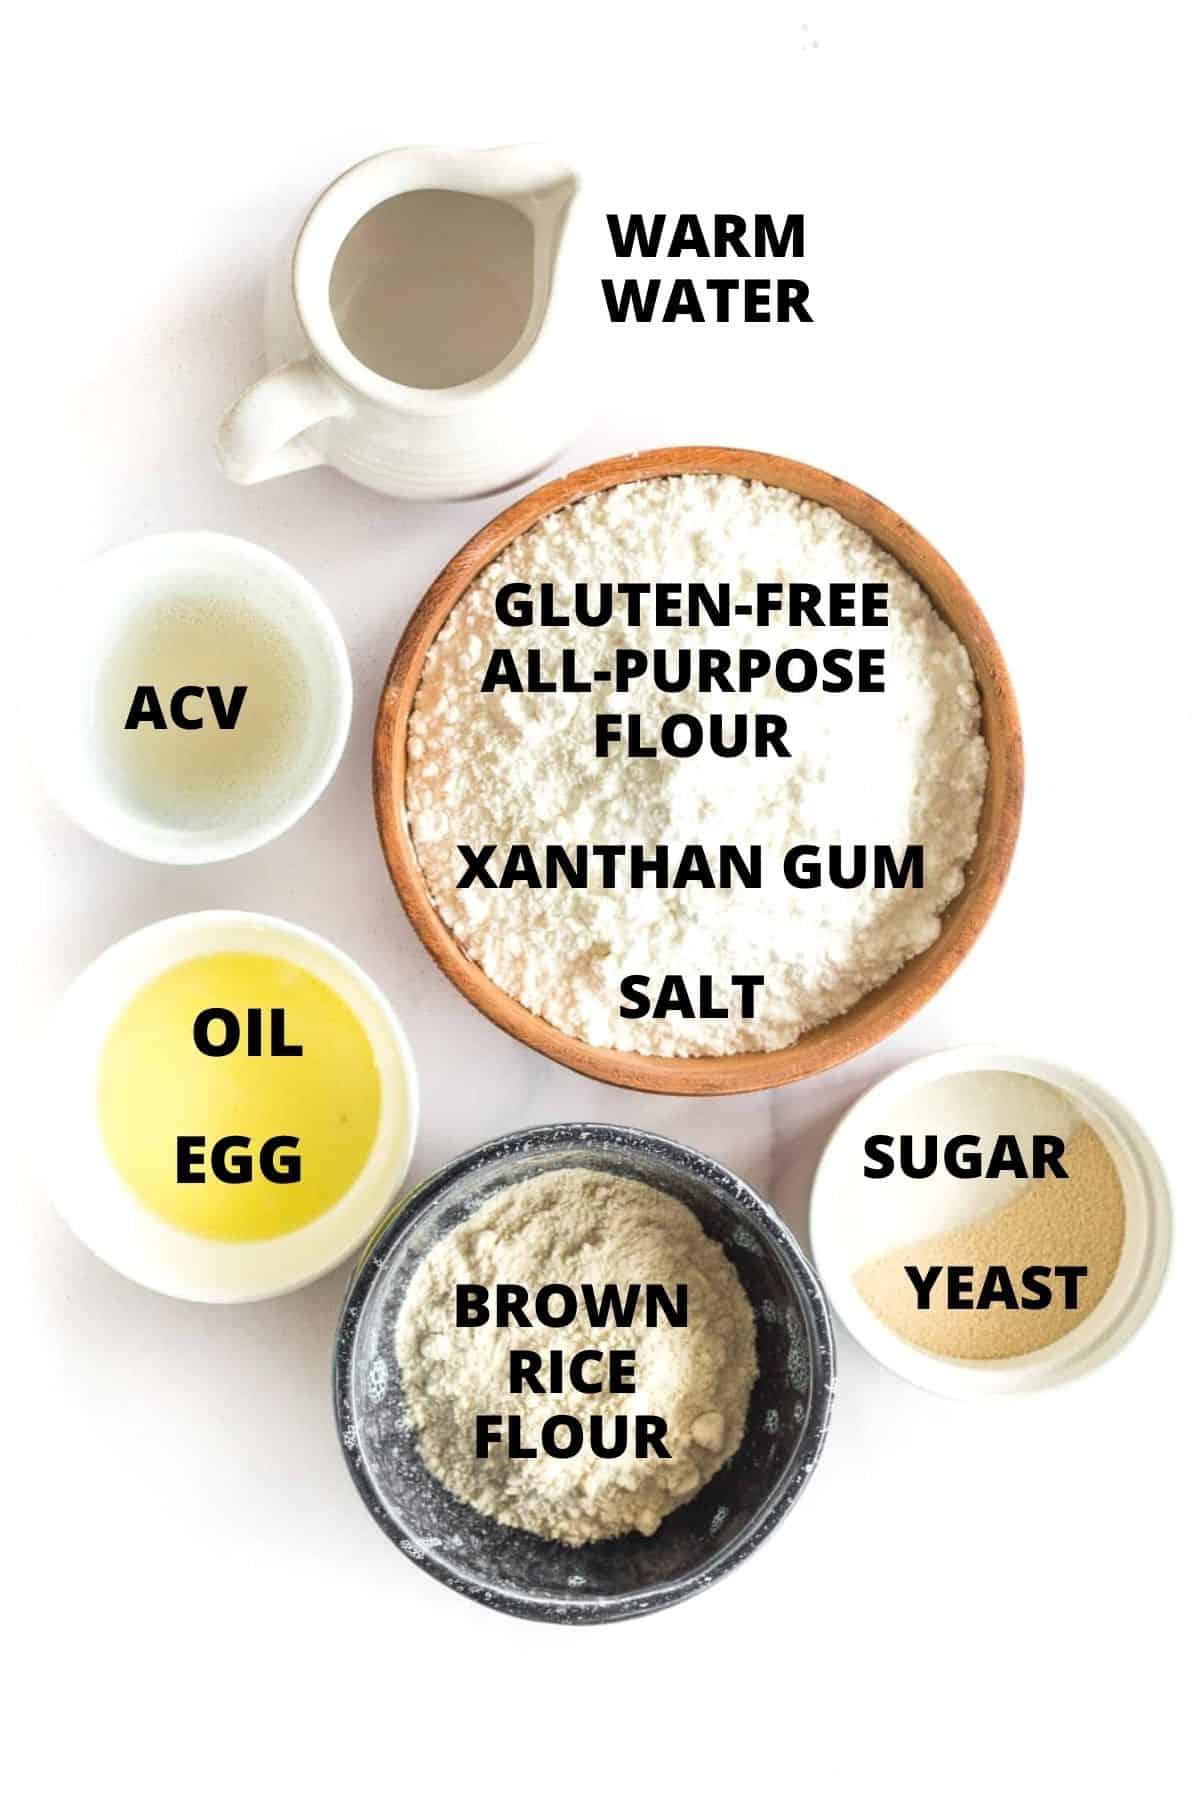 Ingredients for making easy gluten-free pizza dough recipe.